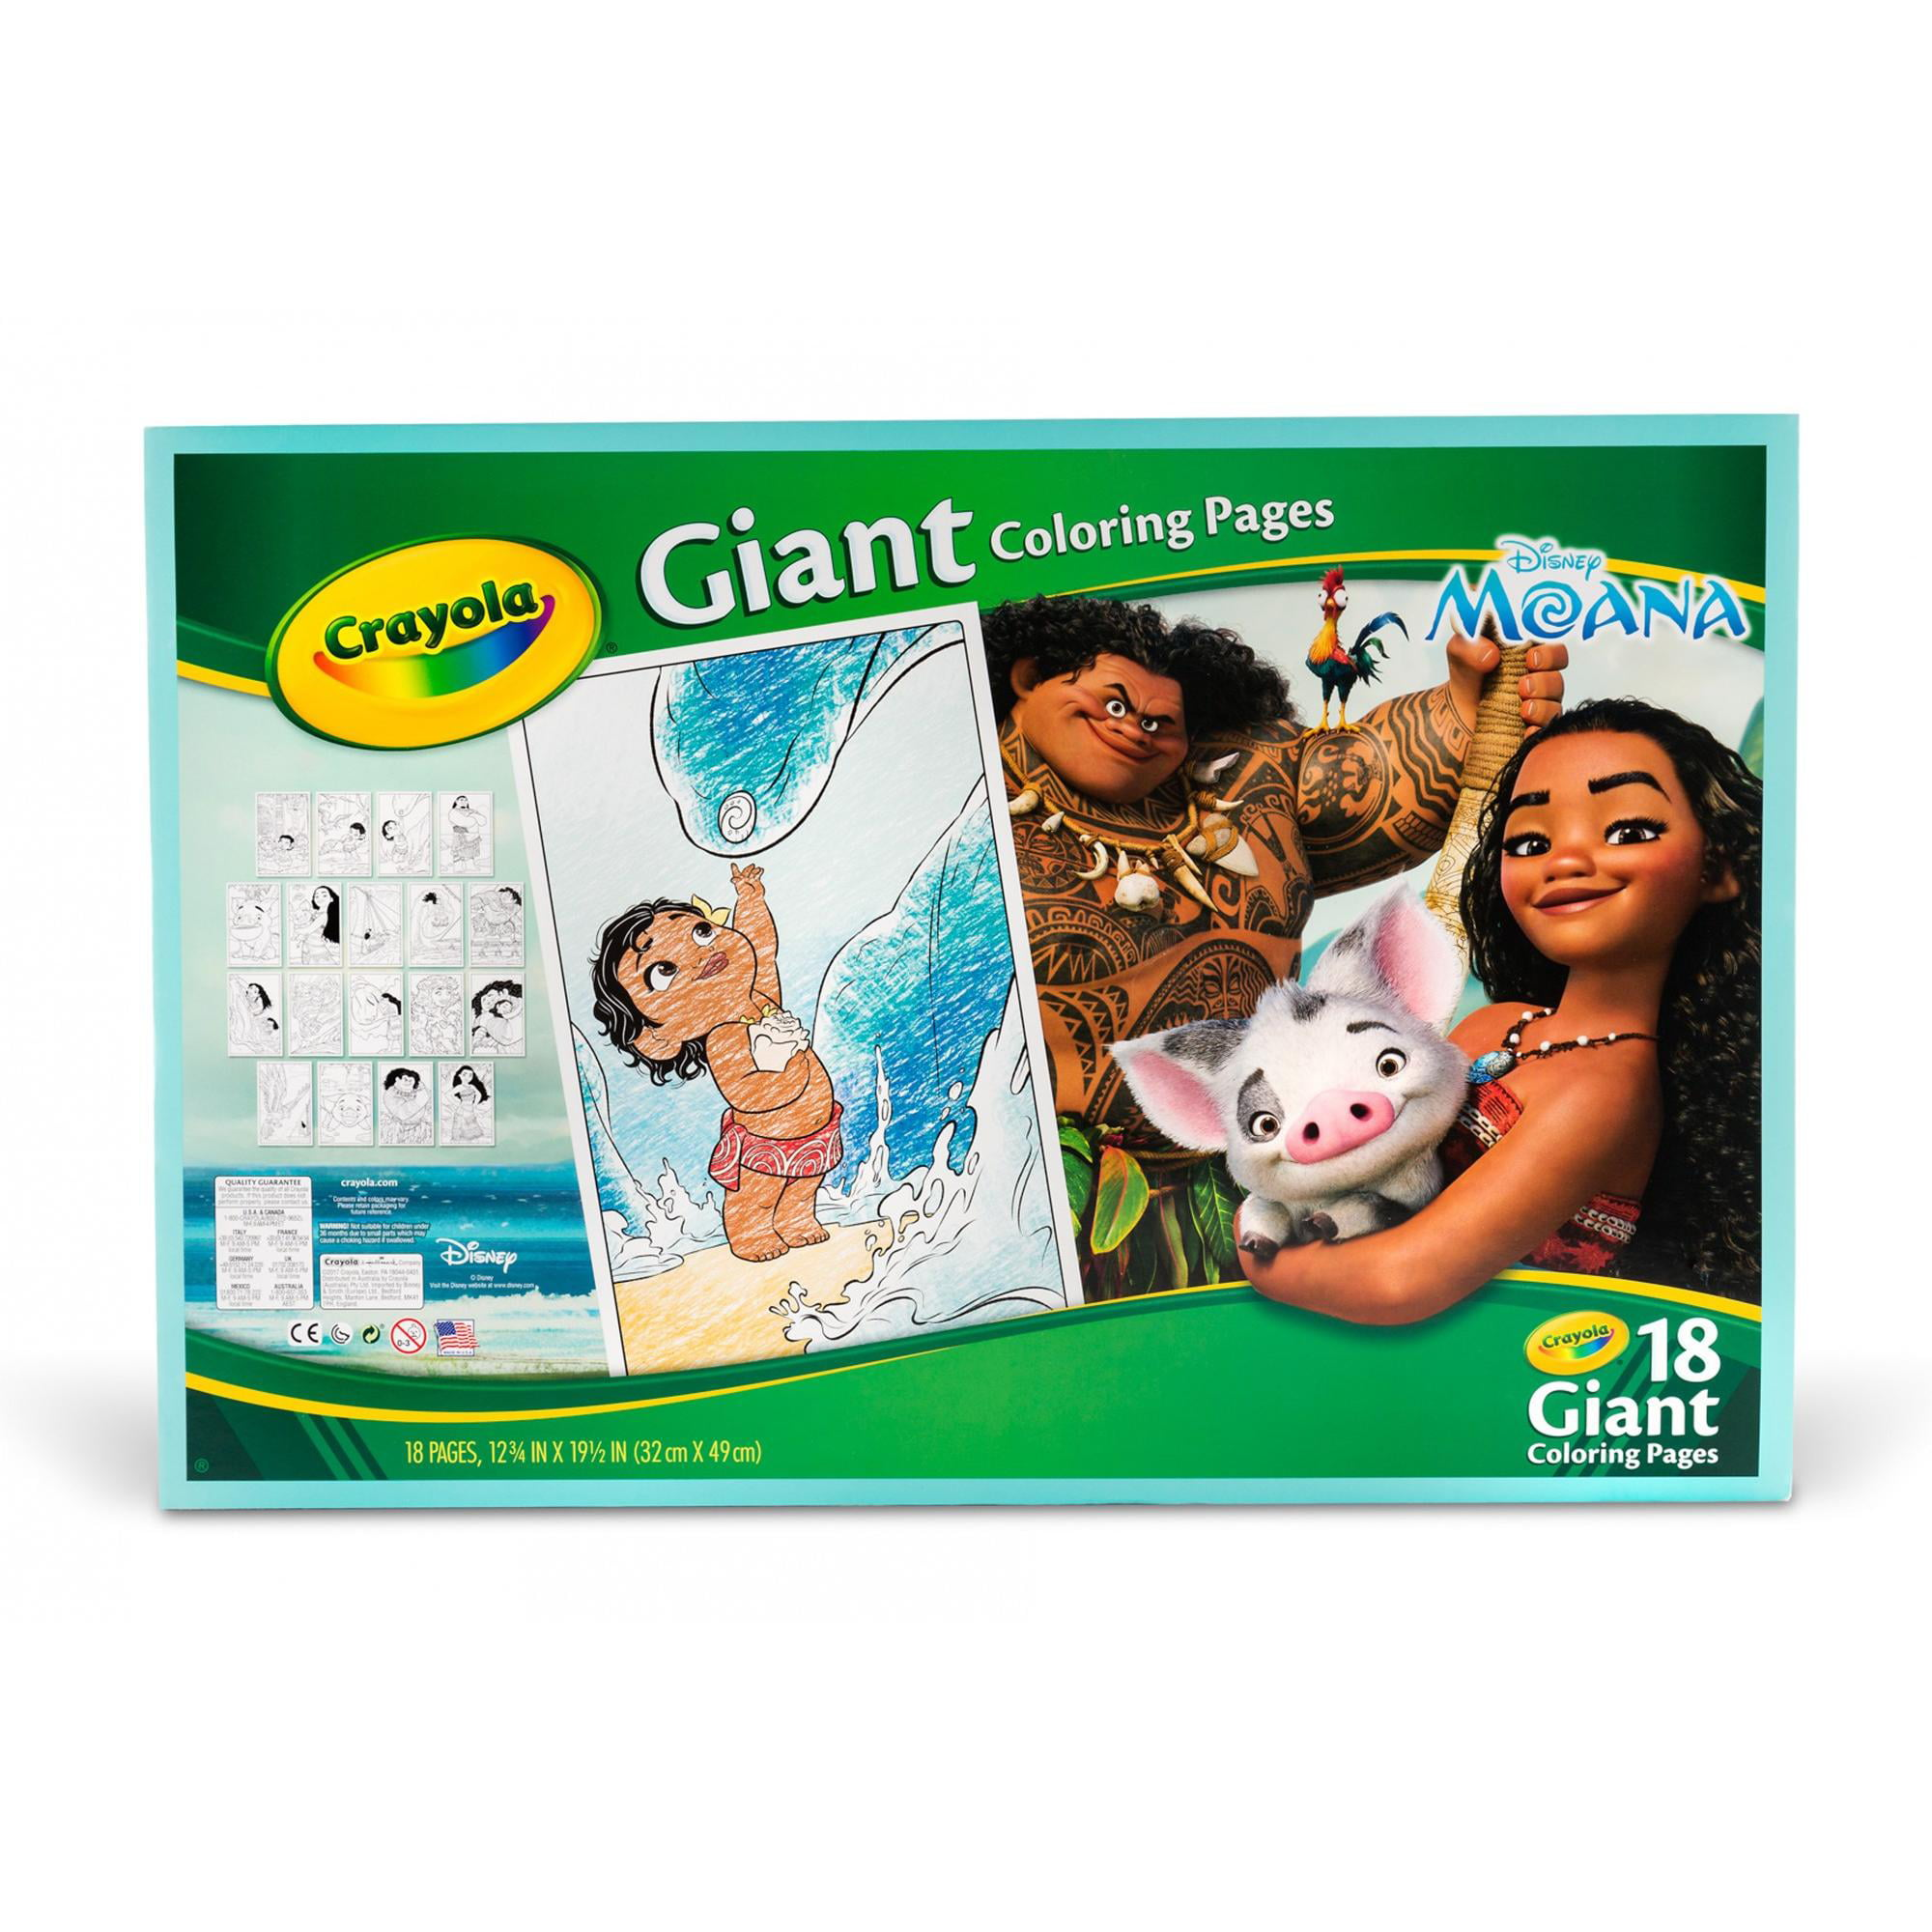 Crayola Disneys Moana Giant Coloring Pages Gift for Girls